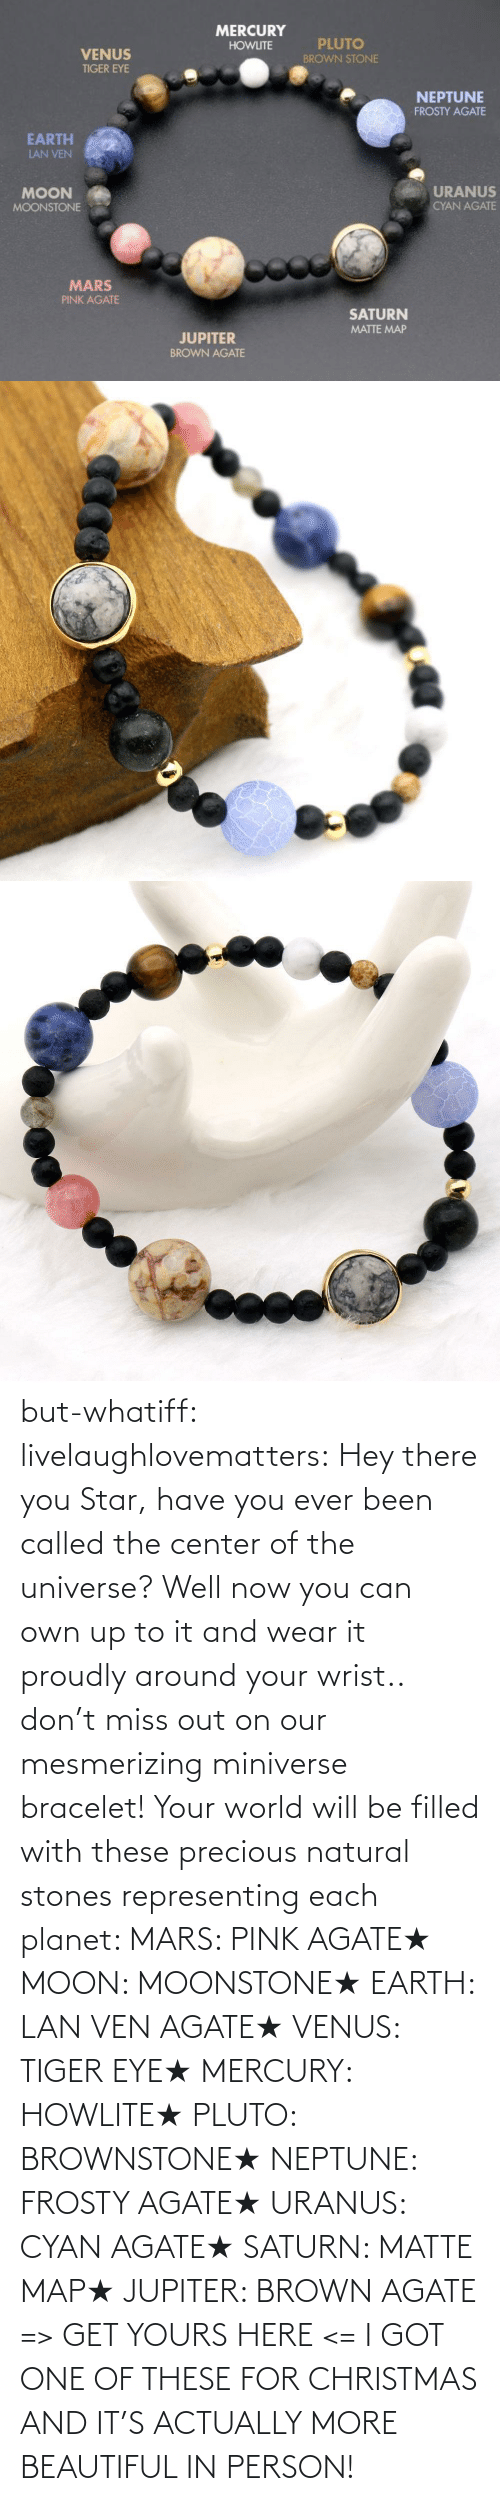 have you ever: but-whatiff:  livelaughlovematters:  Hey there you Star, have you ever been called the center of the universe? Well now you can own up to it and wear it proudly around your wrist.. don't miss out on our mesmerizing miniverse bracelet! Your world will be filled with these precious natural stones representing each planet:  MARS: PINK AGATE★ MOON: MOONSTONE★ EARTH: LAN VEN AGATE★ VENUS: TIGER EYE★ MERCURY: HOWLITE★ PLUTO: BROWNSTONE★ NEPTUNE: FROSTY AGATE★ URANUS: CYAN AGATE★ SATURN: MATTE MAP★ JUPITER: BROWN AGATE => GET YOURS HERE <=  I GOT ONE OF THESE FOR CHRISTMAS AND IT'S ACTUALLY MORE BEAUTIFUL IN PERSON!